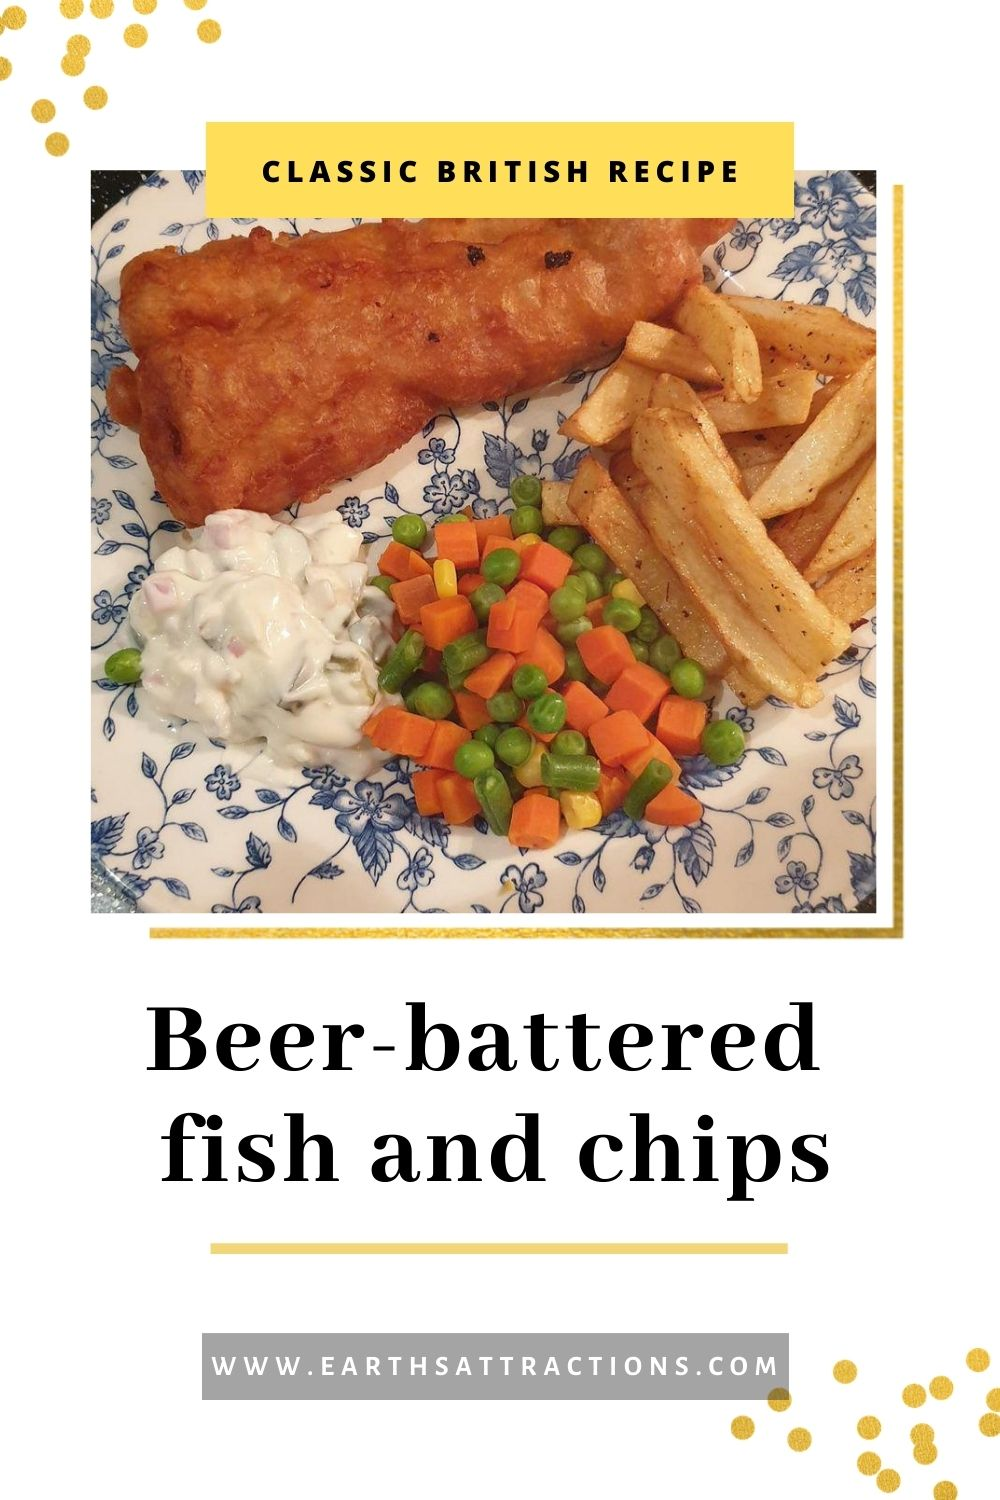 Classic British beer-battered fish and chips recipe. Discover the best fish'n'chips recipe that you can make at home. This traditional fish and chips recipe is easy to make and tasty! Save this pin and read the article now! #fishandchips ##fishandchipsrecipe #recipe #recipes #britishrecipe #britishfood #britishdish #famousdishes #fishandchipsbeer #earthsattractions #internationaldishes #flavour